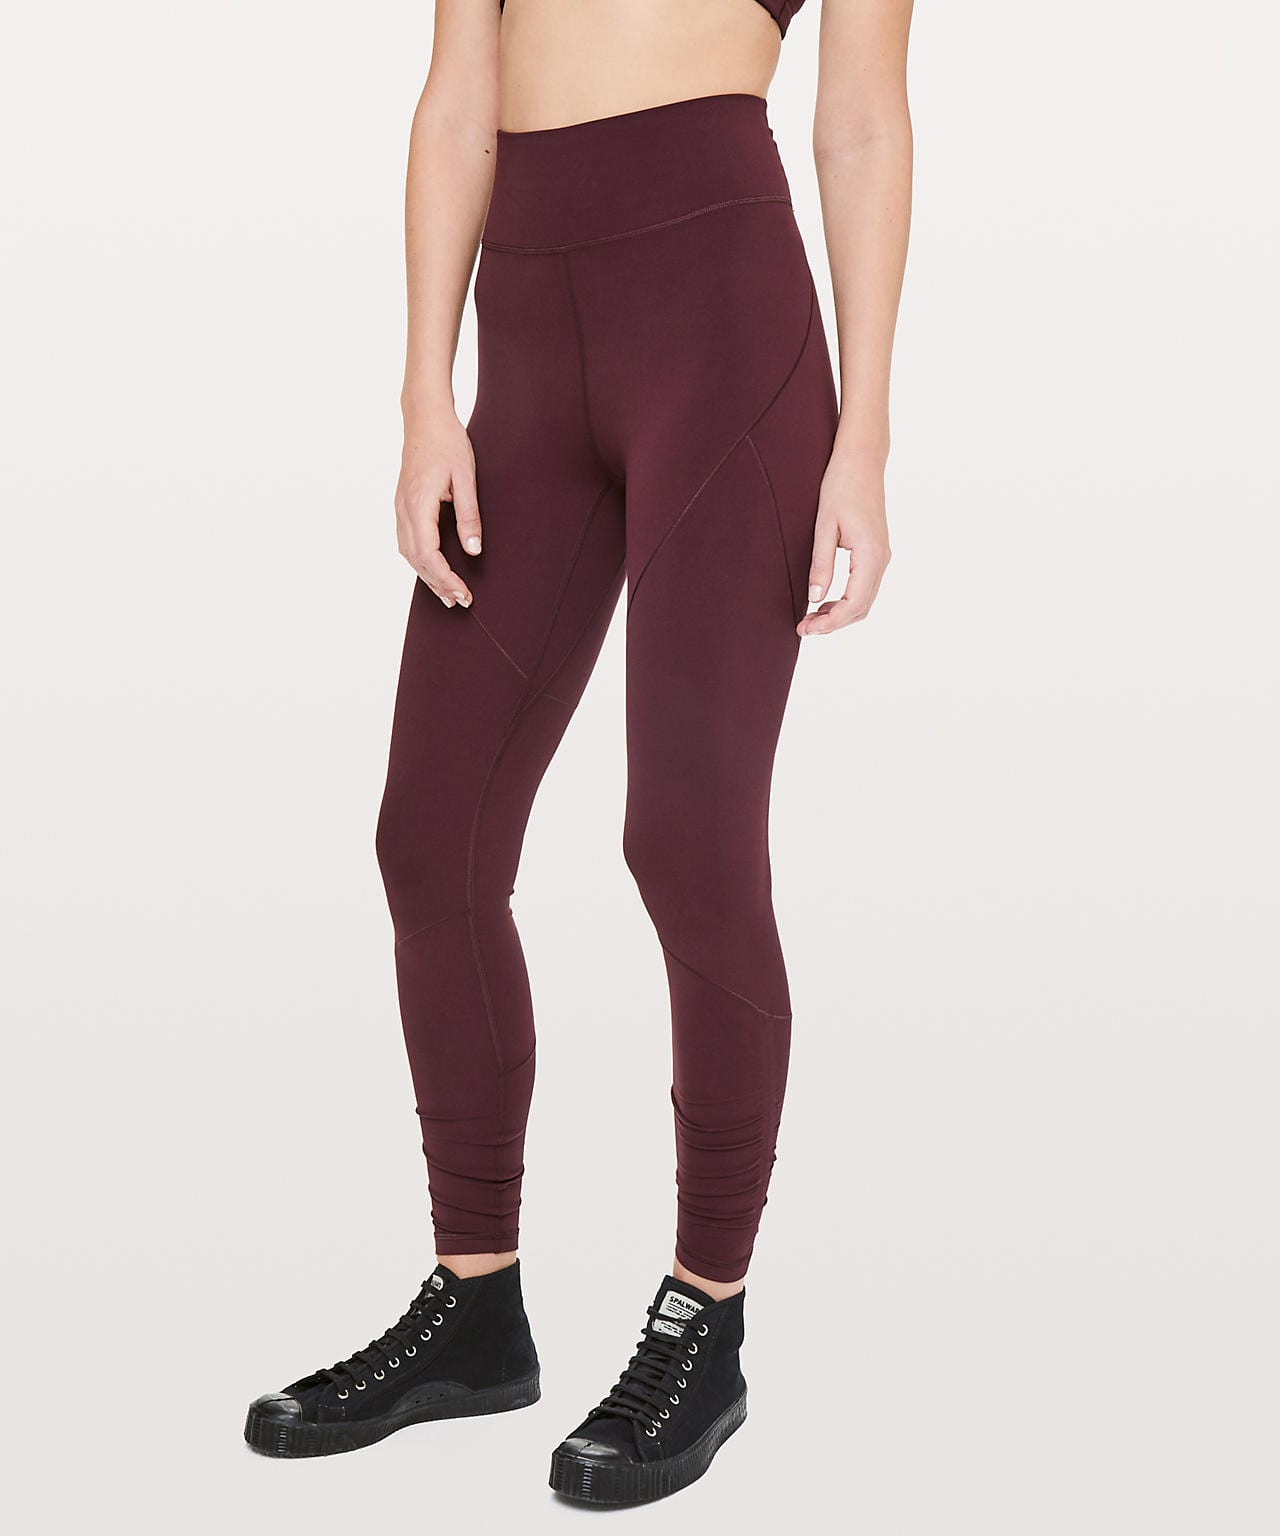 Essential Tight, Lululemon Lab